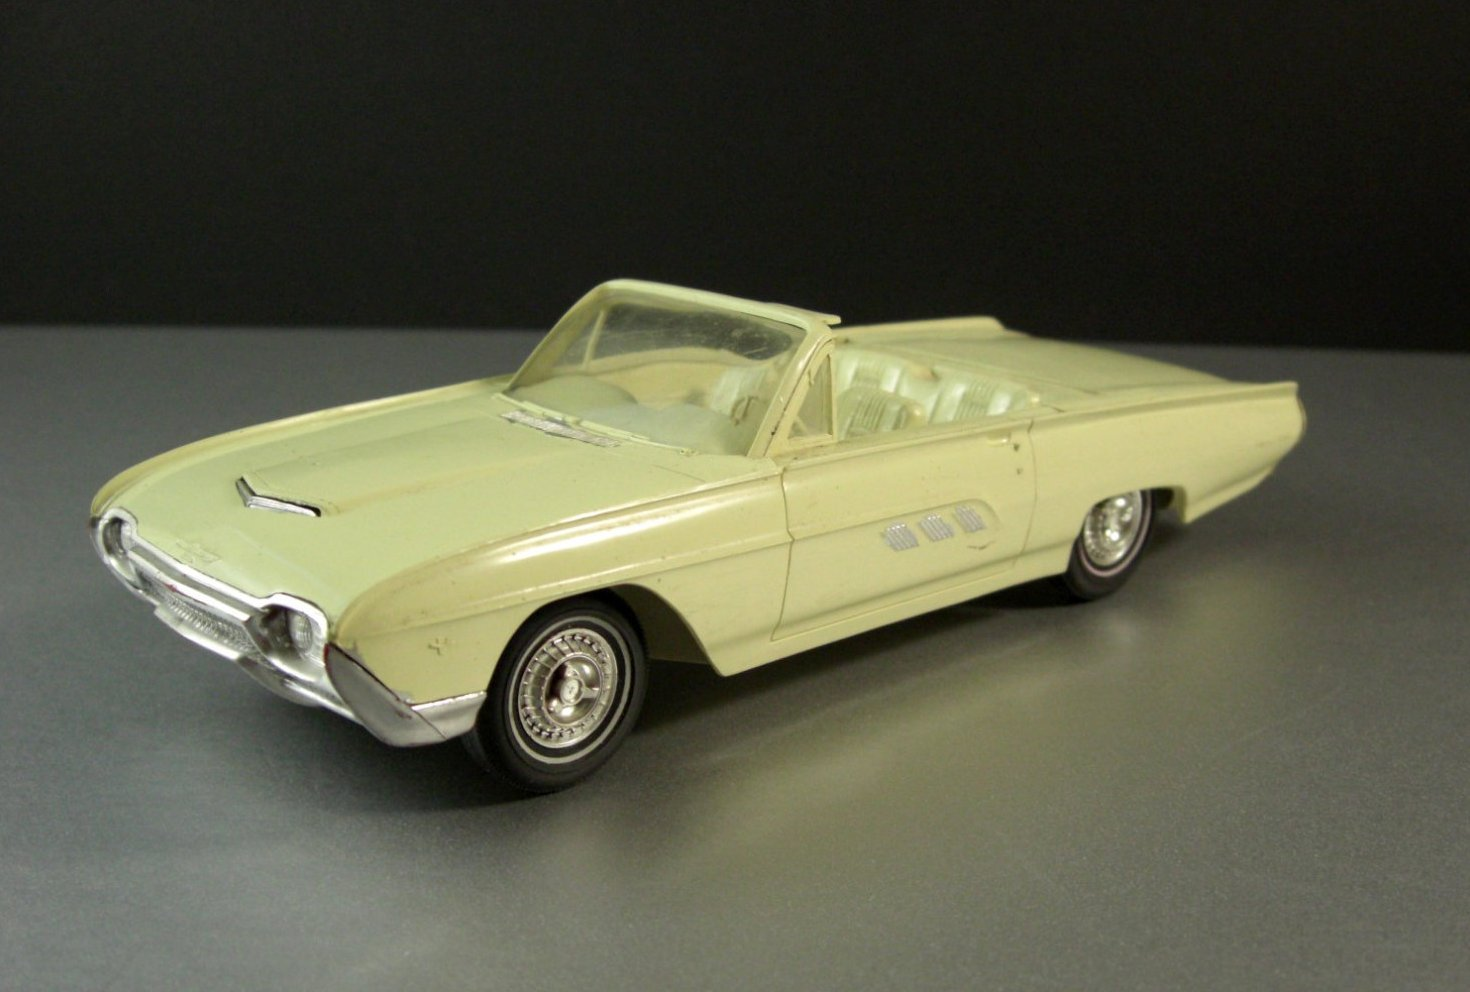 1963 Ford Thunderbird Convertible Dealer Friction Promotional Model Car